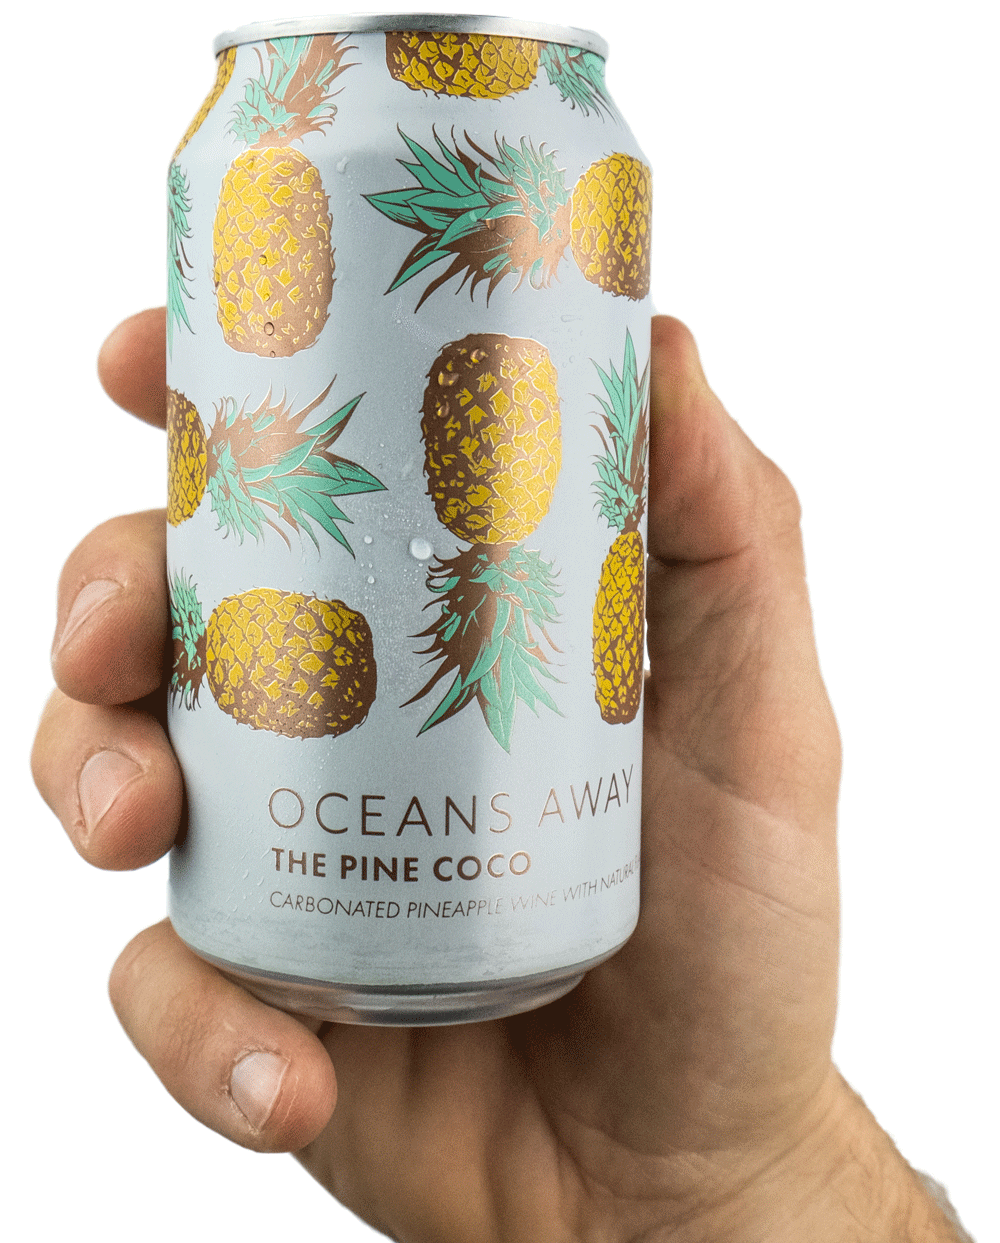 Oceans-Away-Pine-Coco-Caninhand